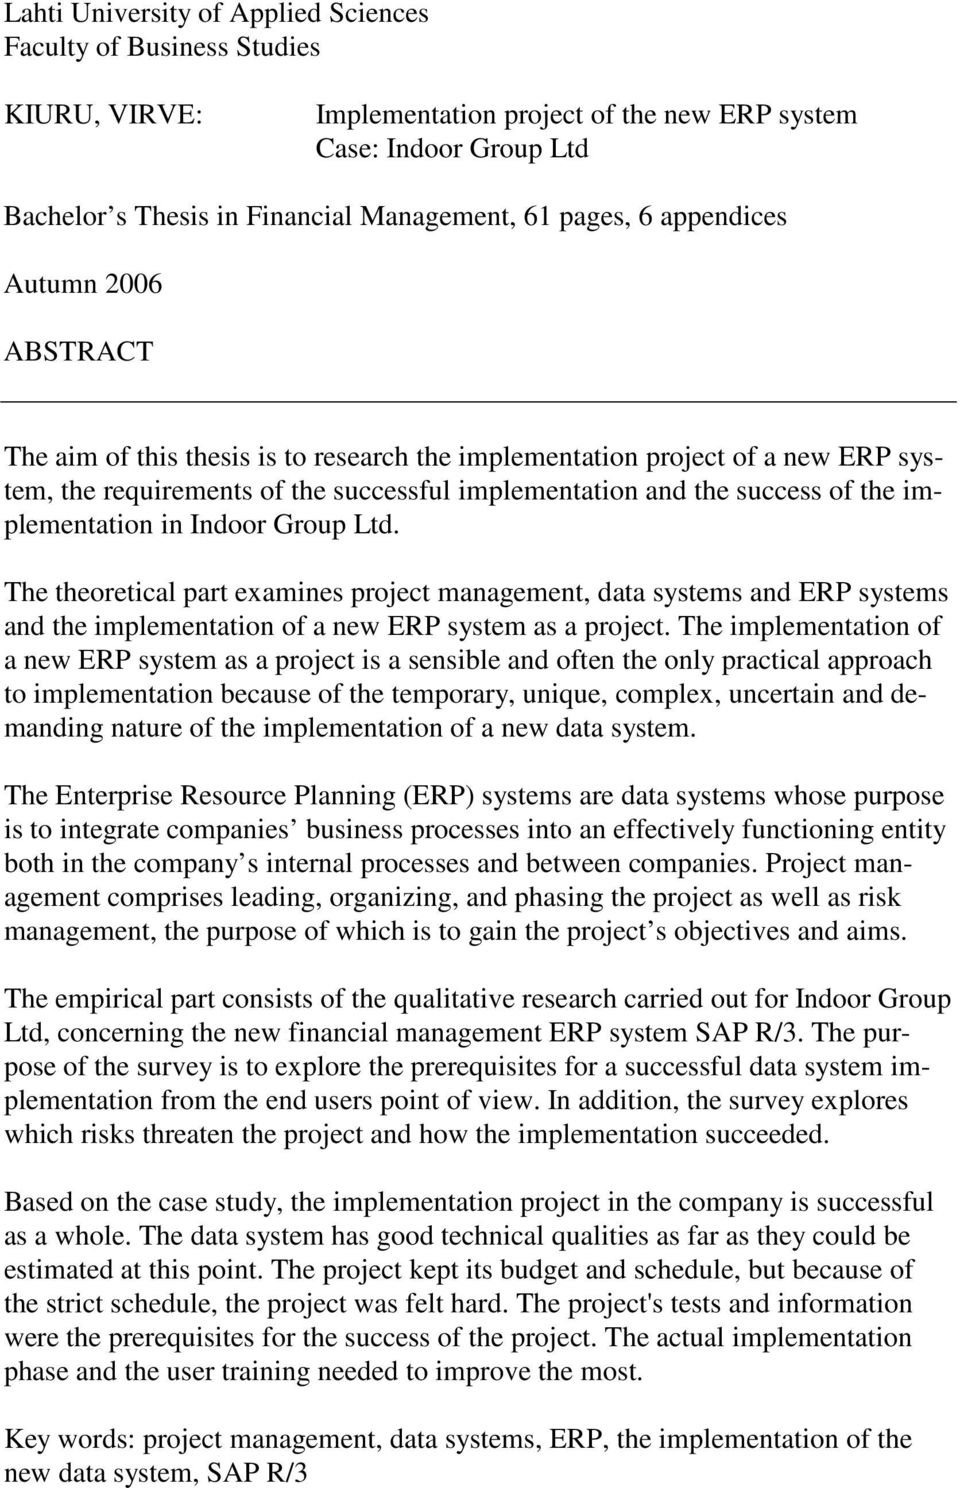 implementation in Indoor Group Ltd. The theoretical part examines project management, data systems and ERP systems and the implementation of a new ERP system as a project.